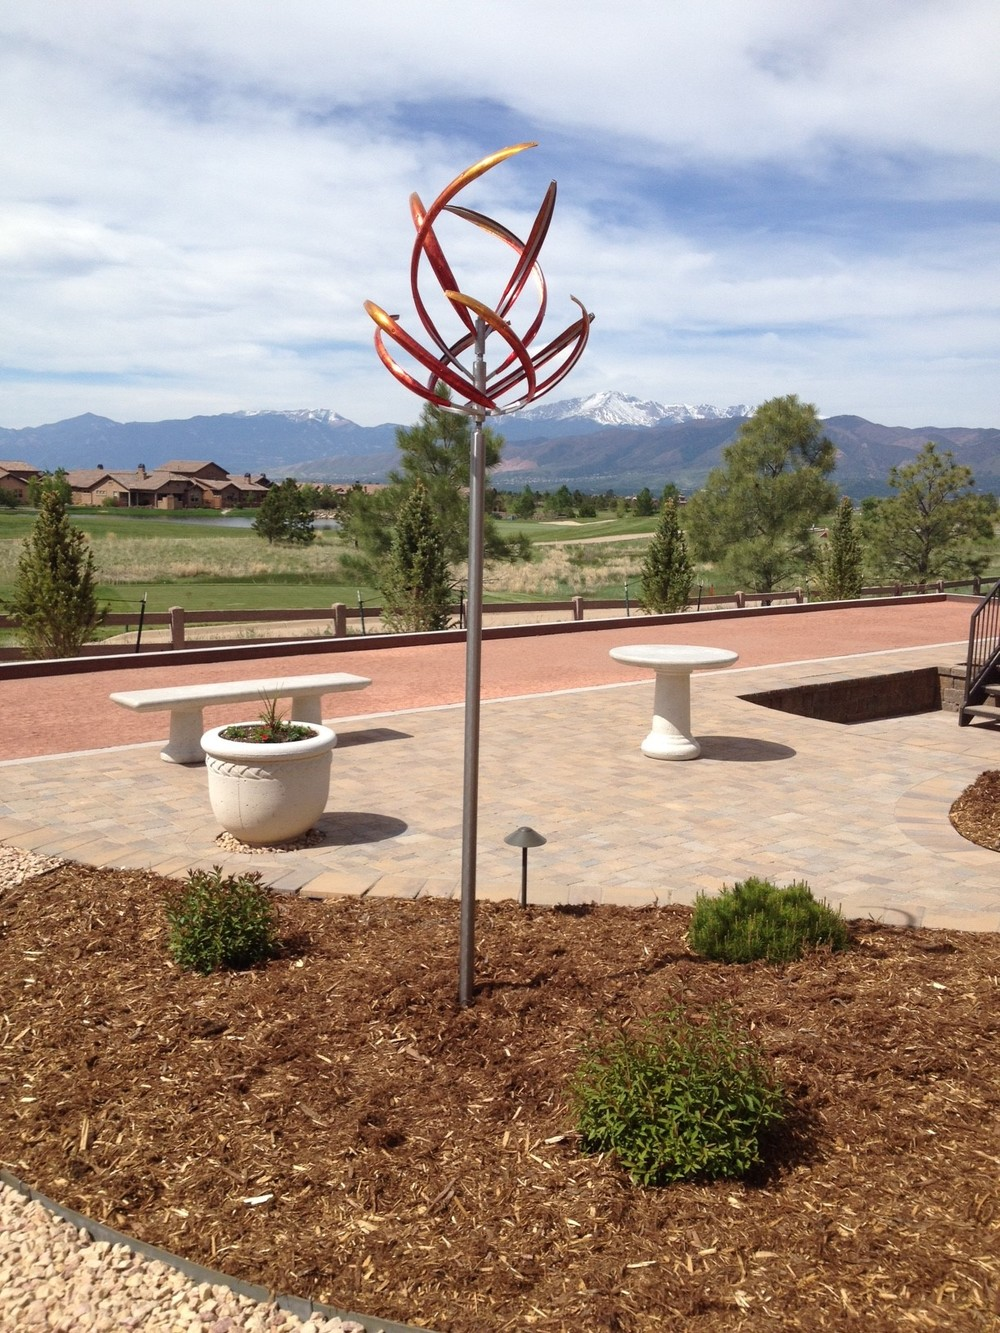 Just installed our Passion Flower wind sculpture. The installation was easy! We love it. Thanks so much. - Bert C., Colorado Springs, CO